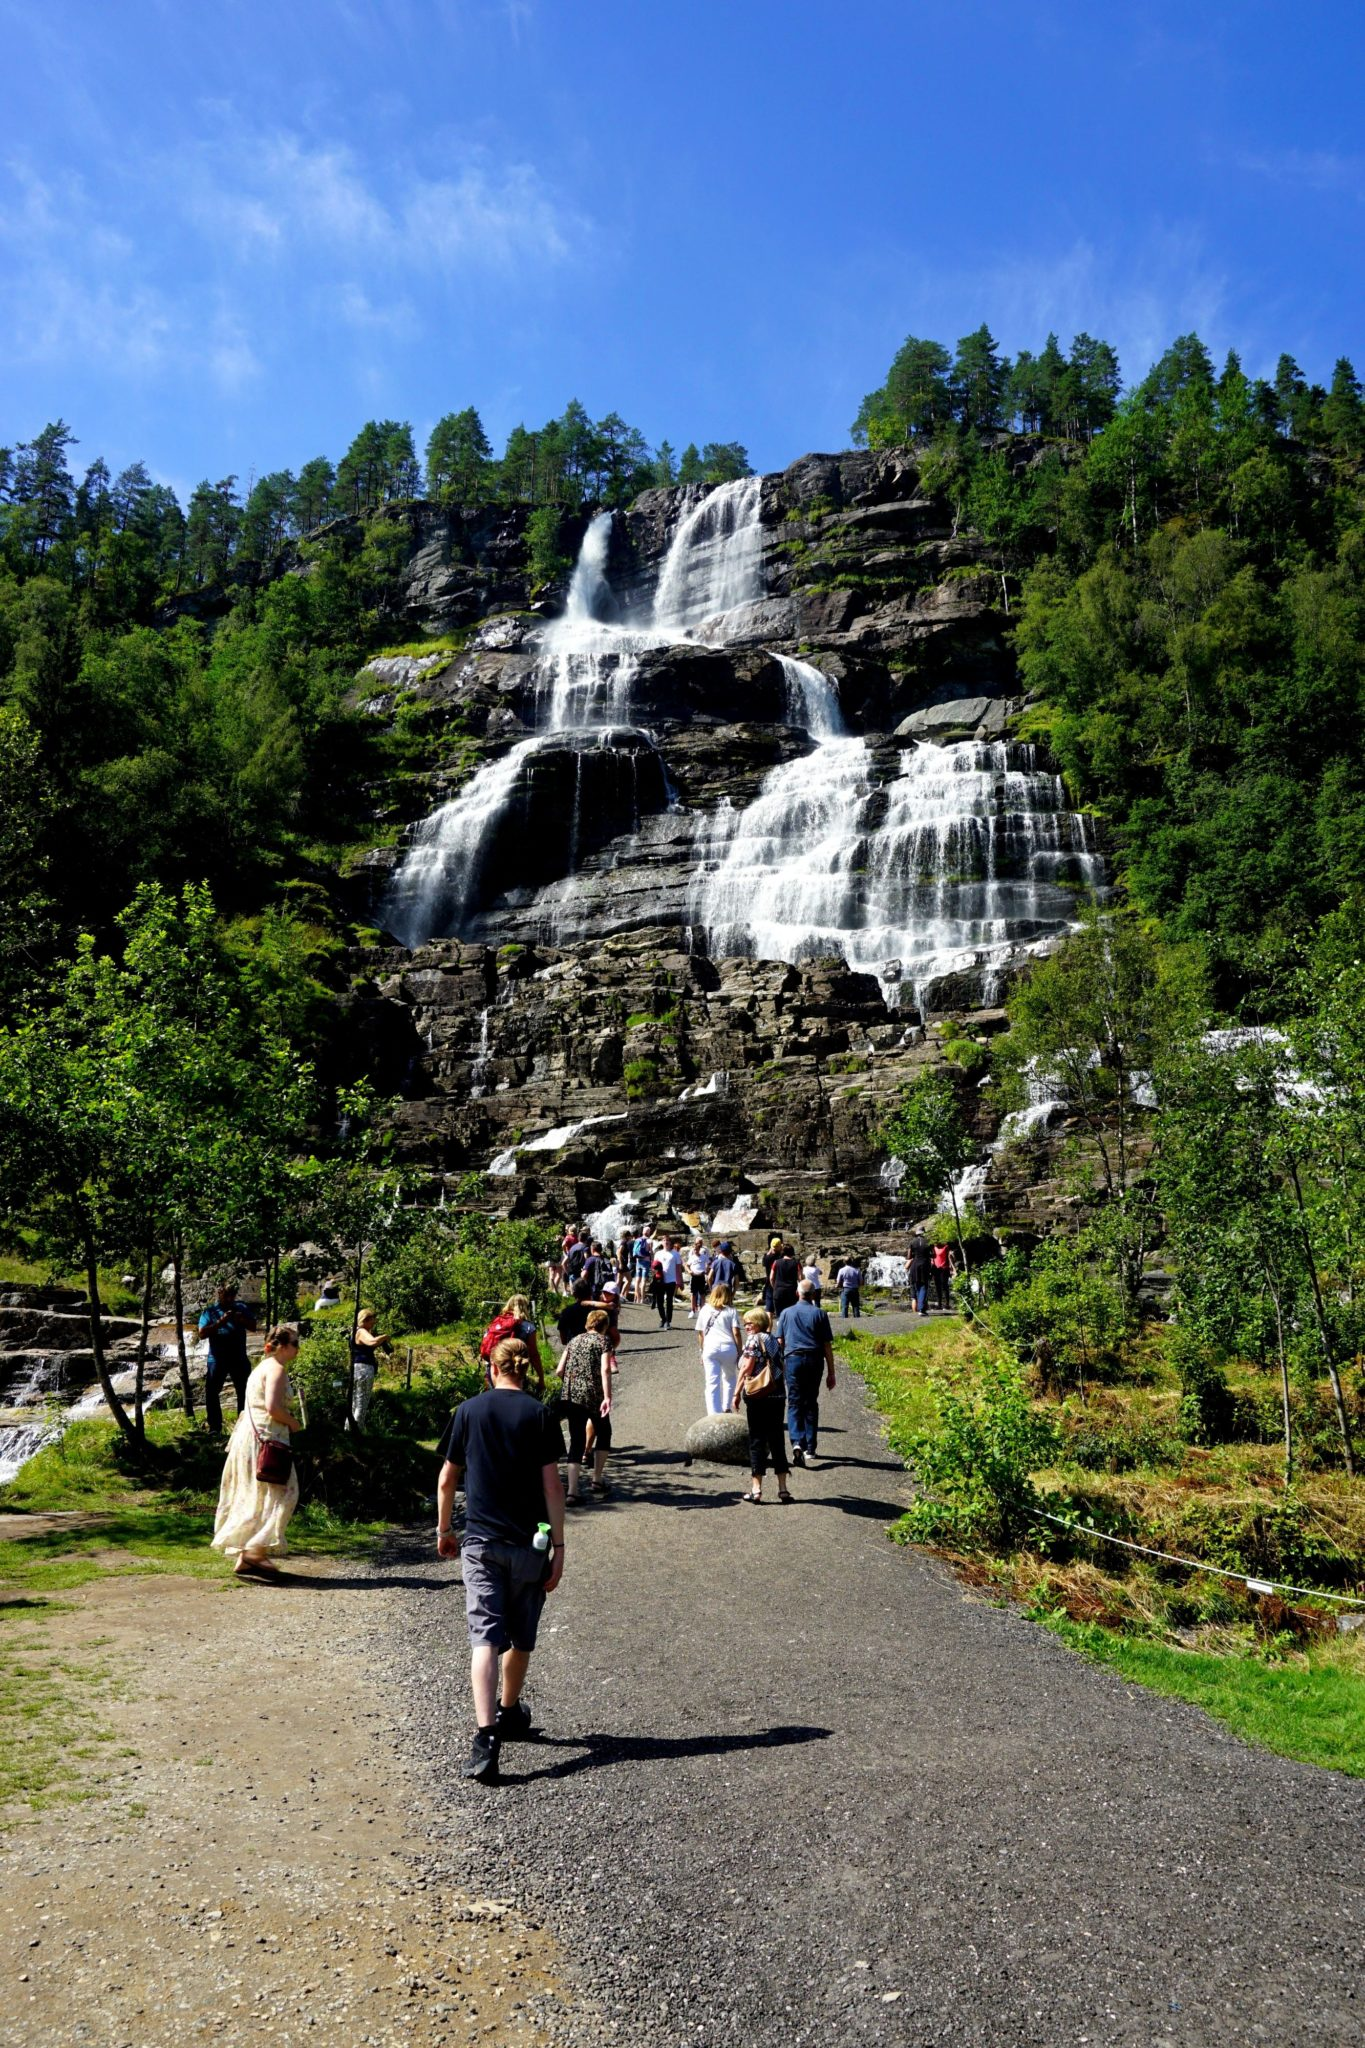 Tourists making their way to the Tvindefossen, some of them eager to fill containers as the water is said to be magical.